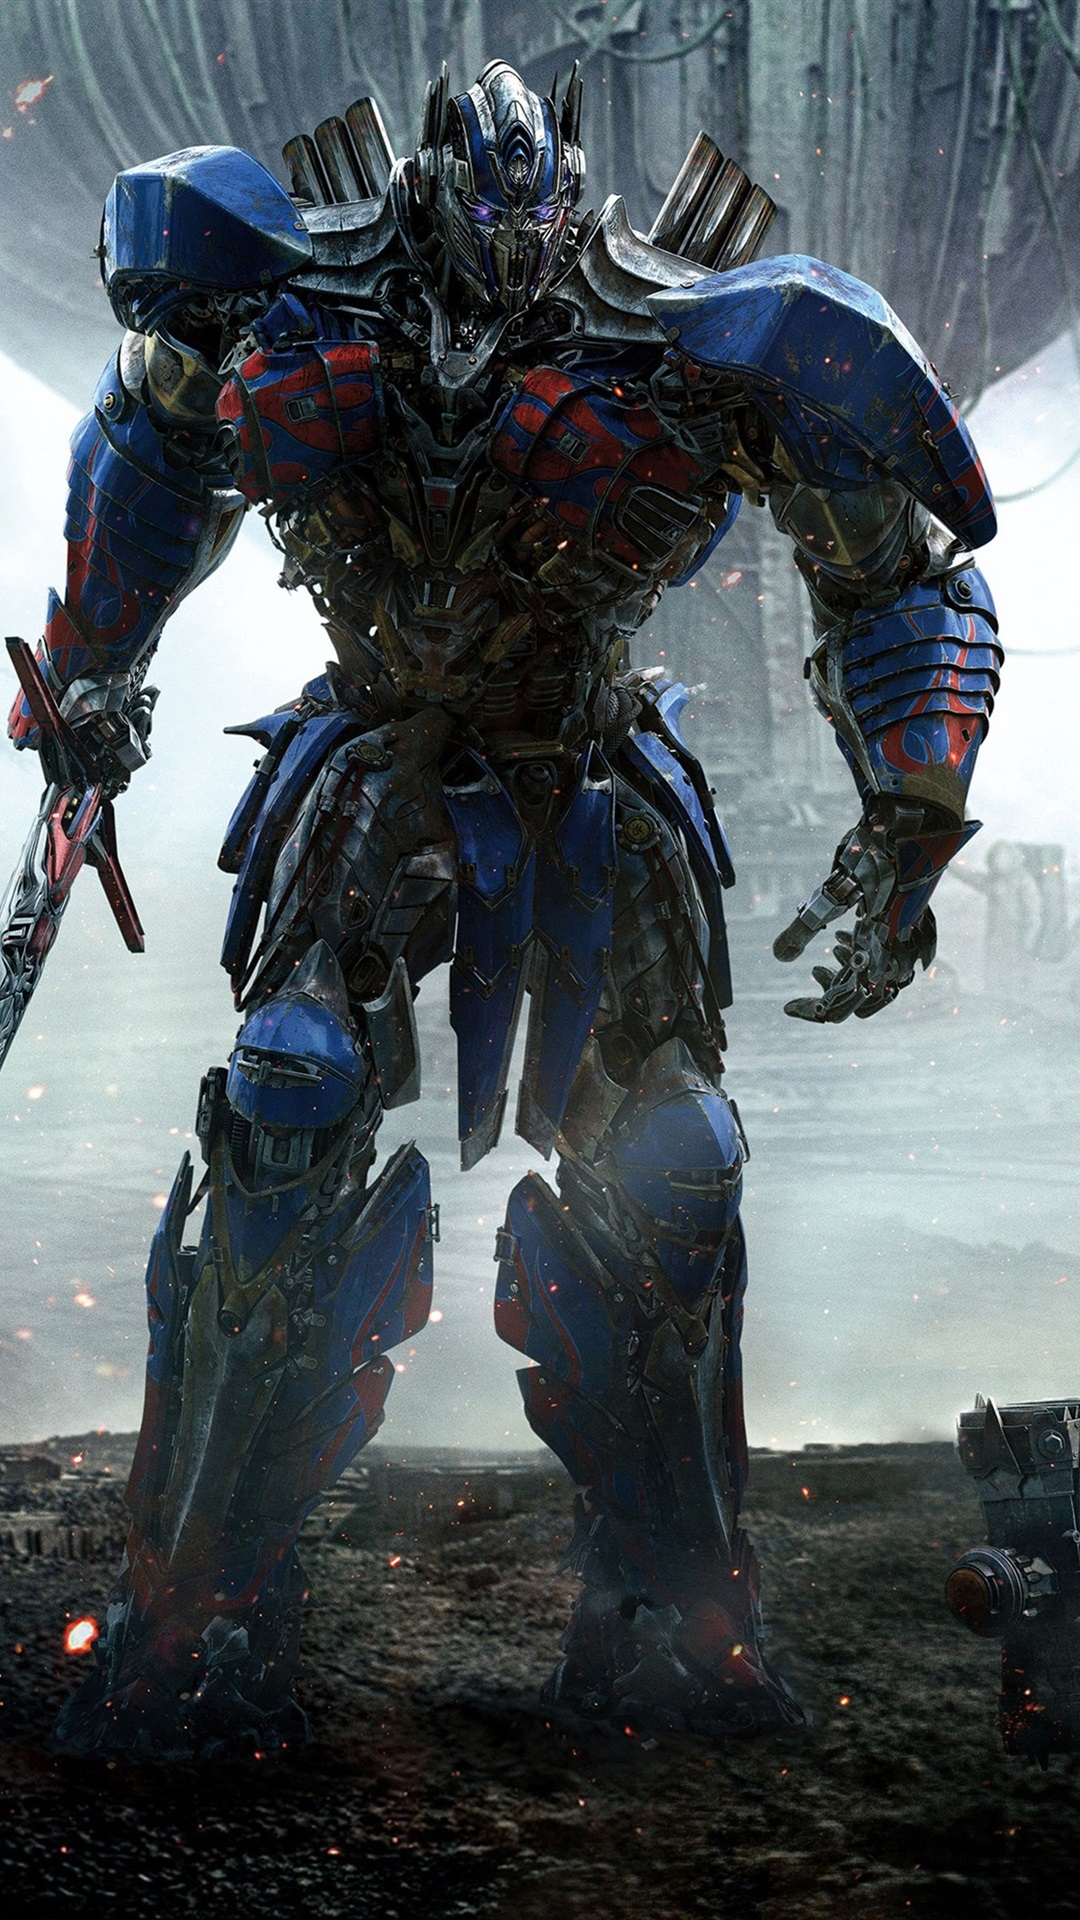 Wallpaper Transformers 5, Optimus Prime And Bumblebee